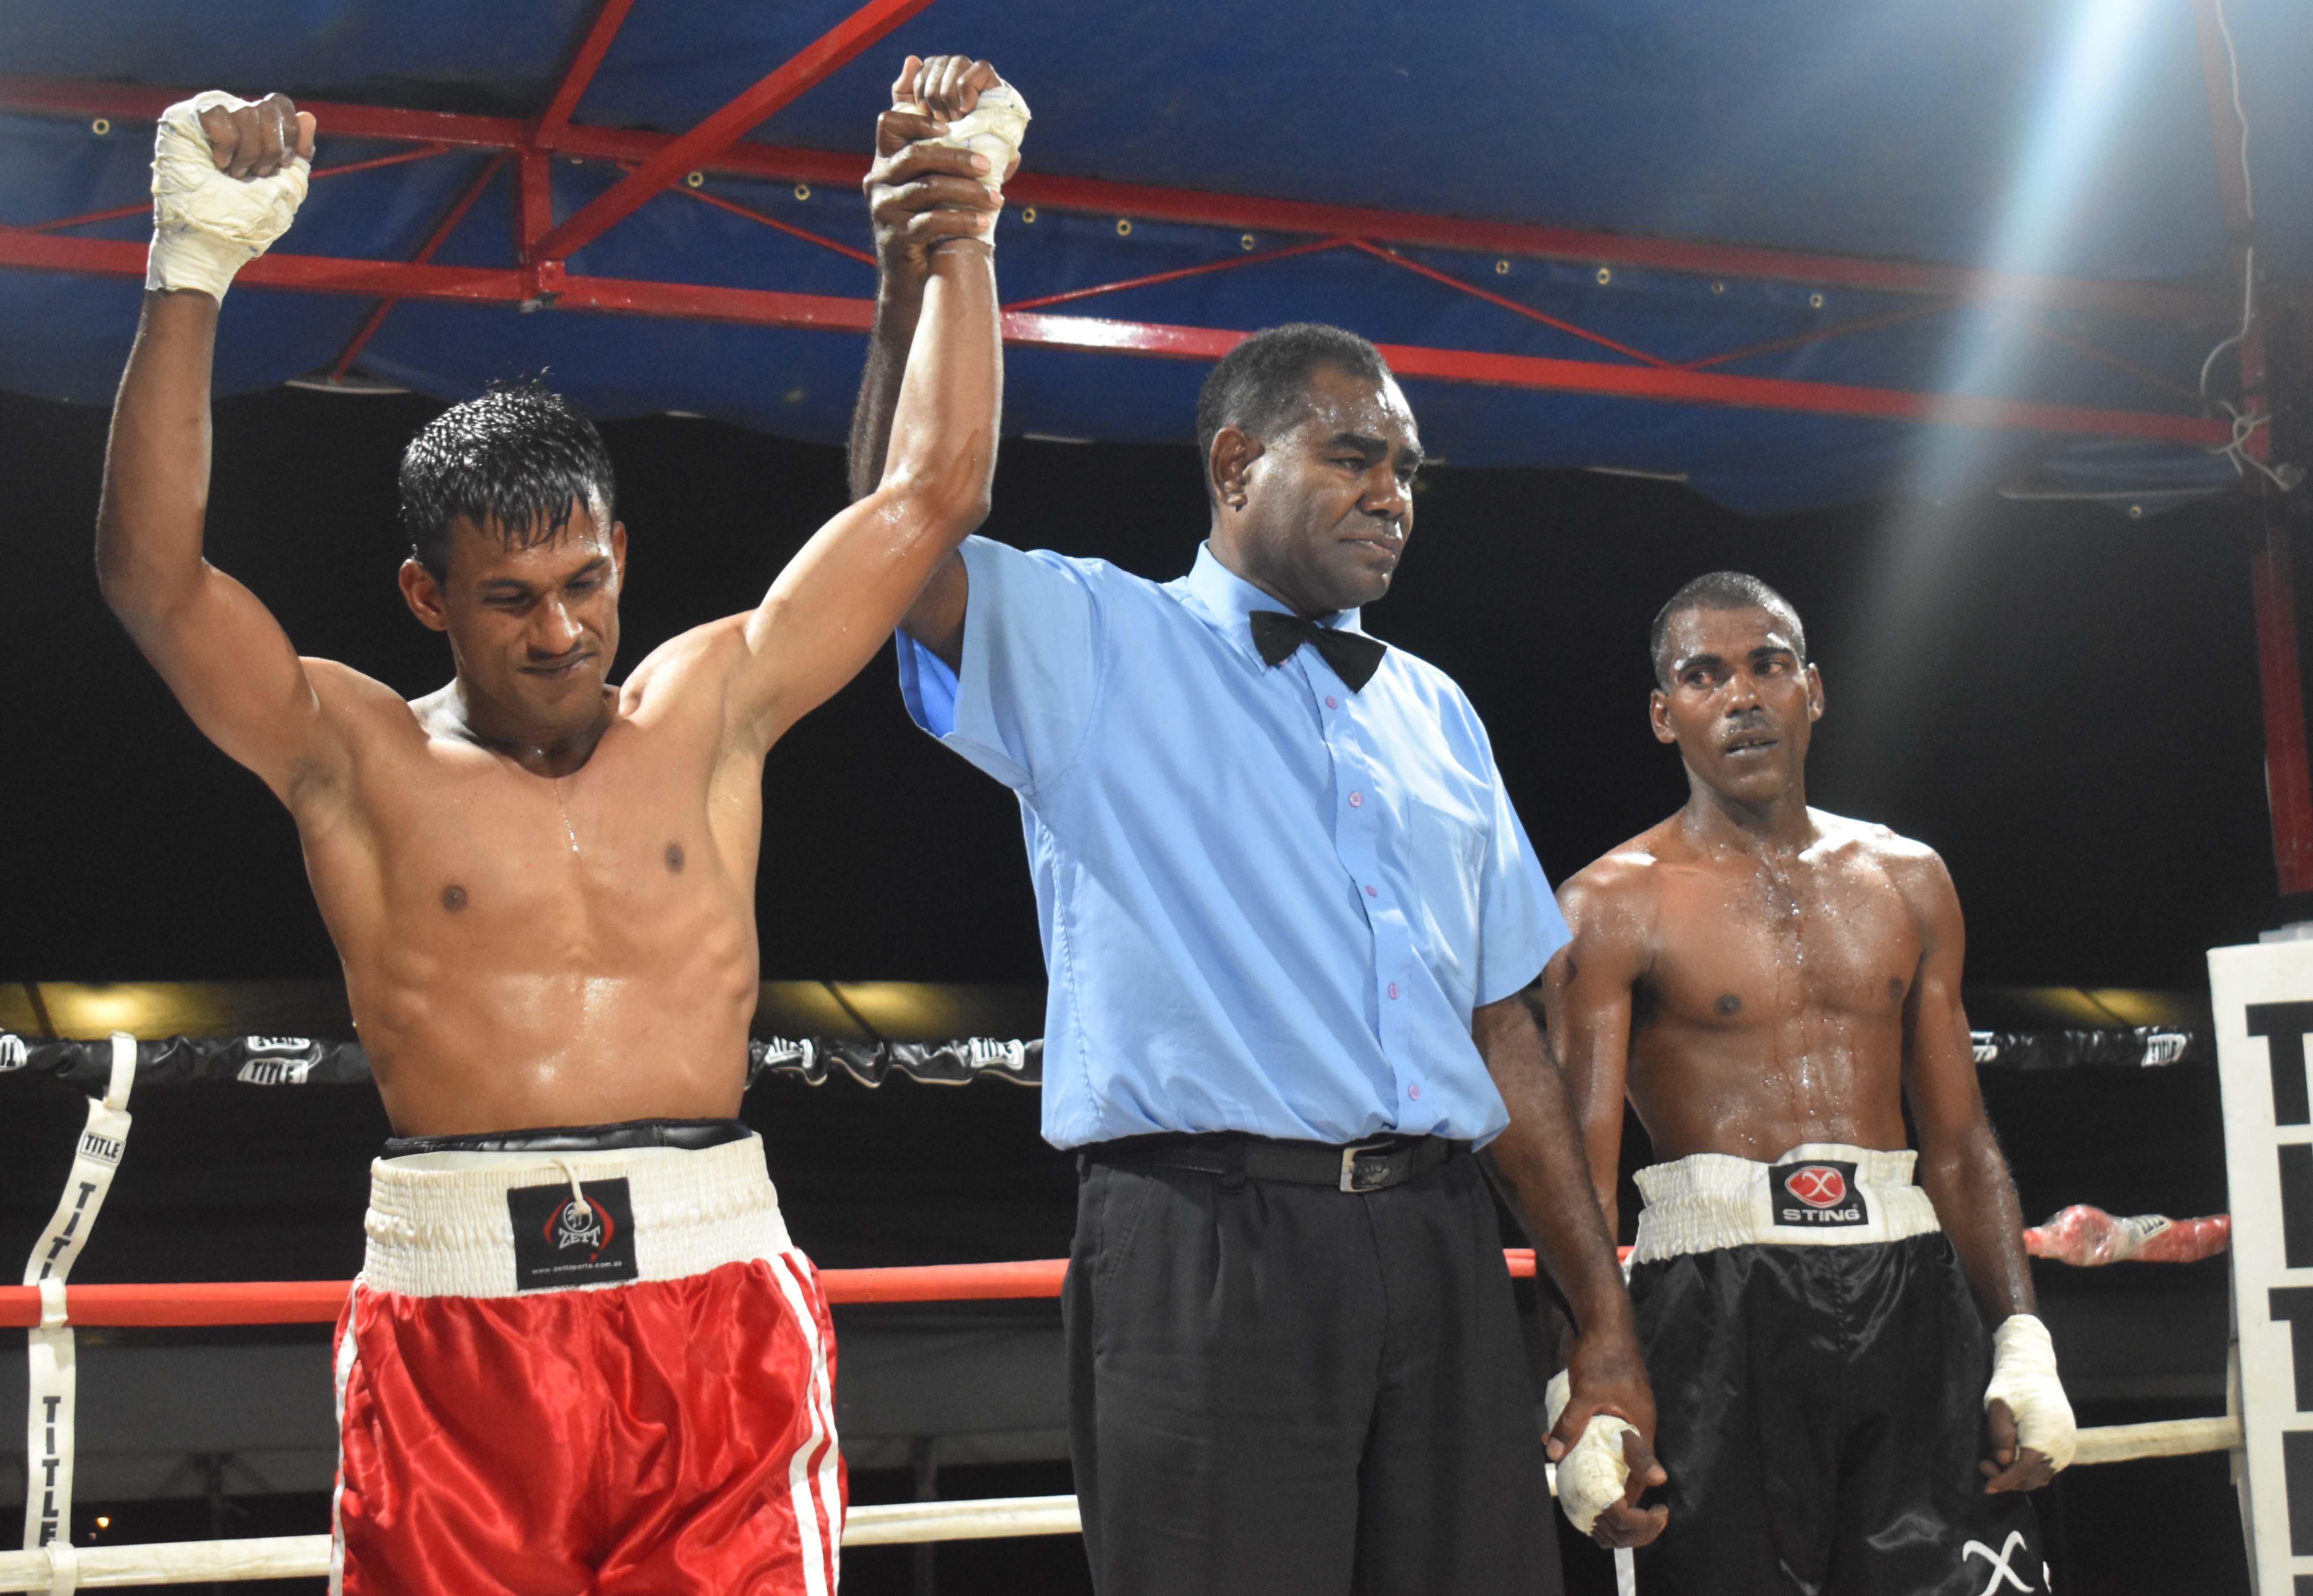 Shamal Ramanuj wins over Ritesh Gounder in the boxing programe at the Prince Charles Park in Nadi last night. Photo: WAISEA NASOKIA